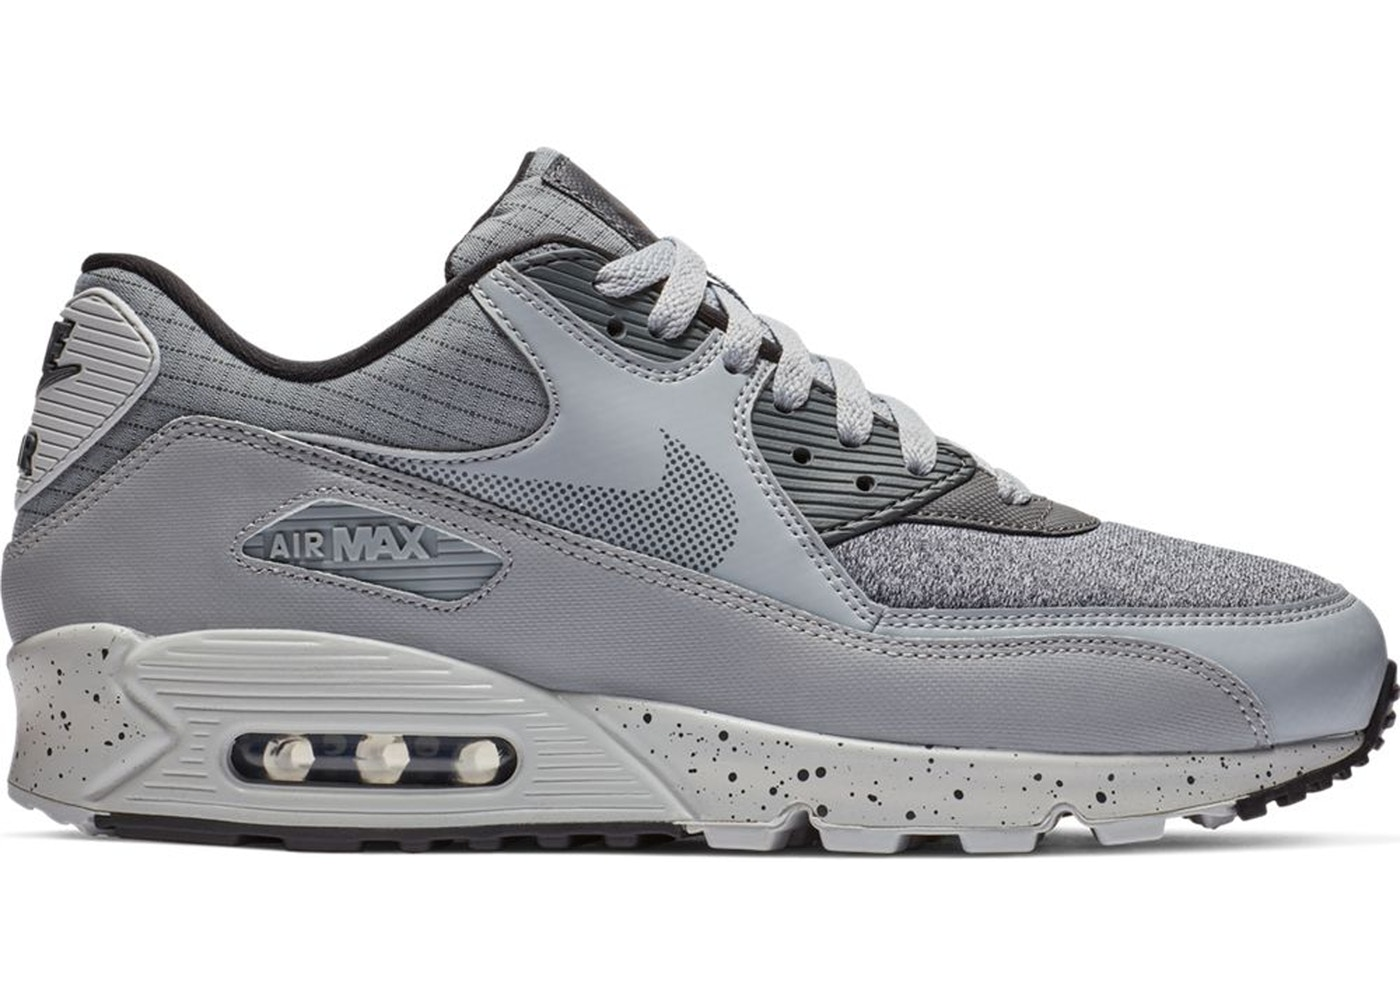 half off a444f 6c1f0 Buy Nike Air Max 90 Shoes   Deadstock Sneakers